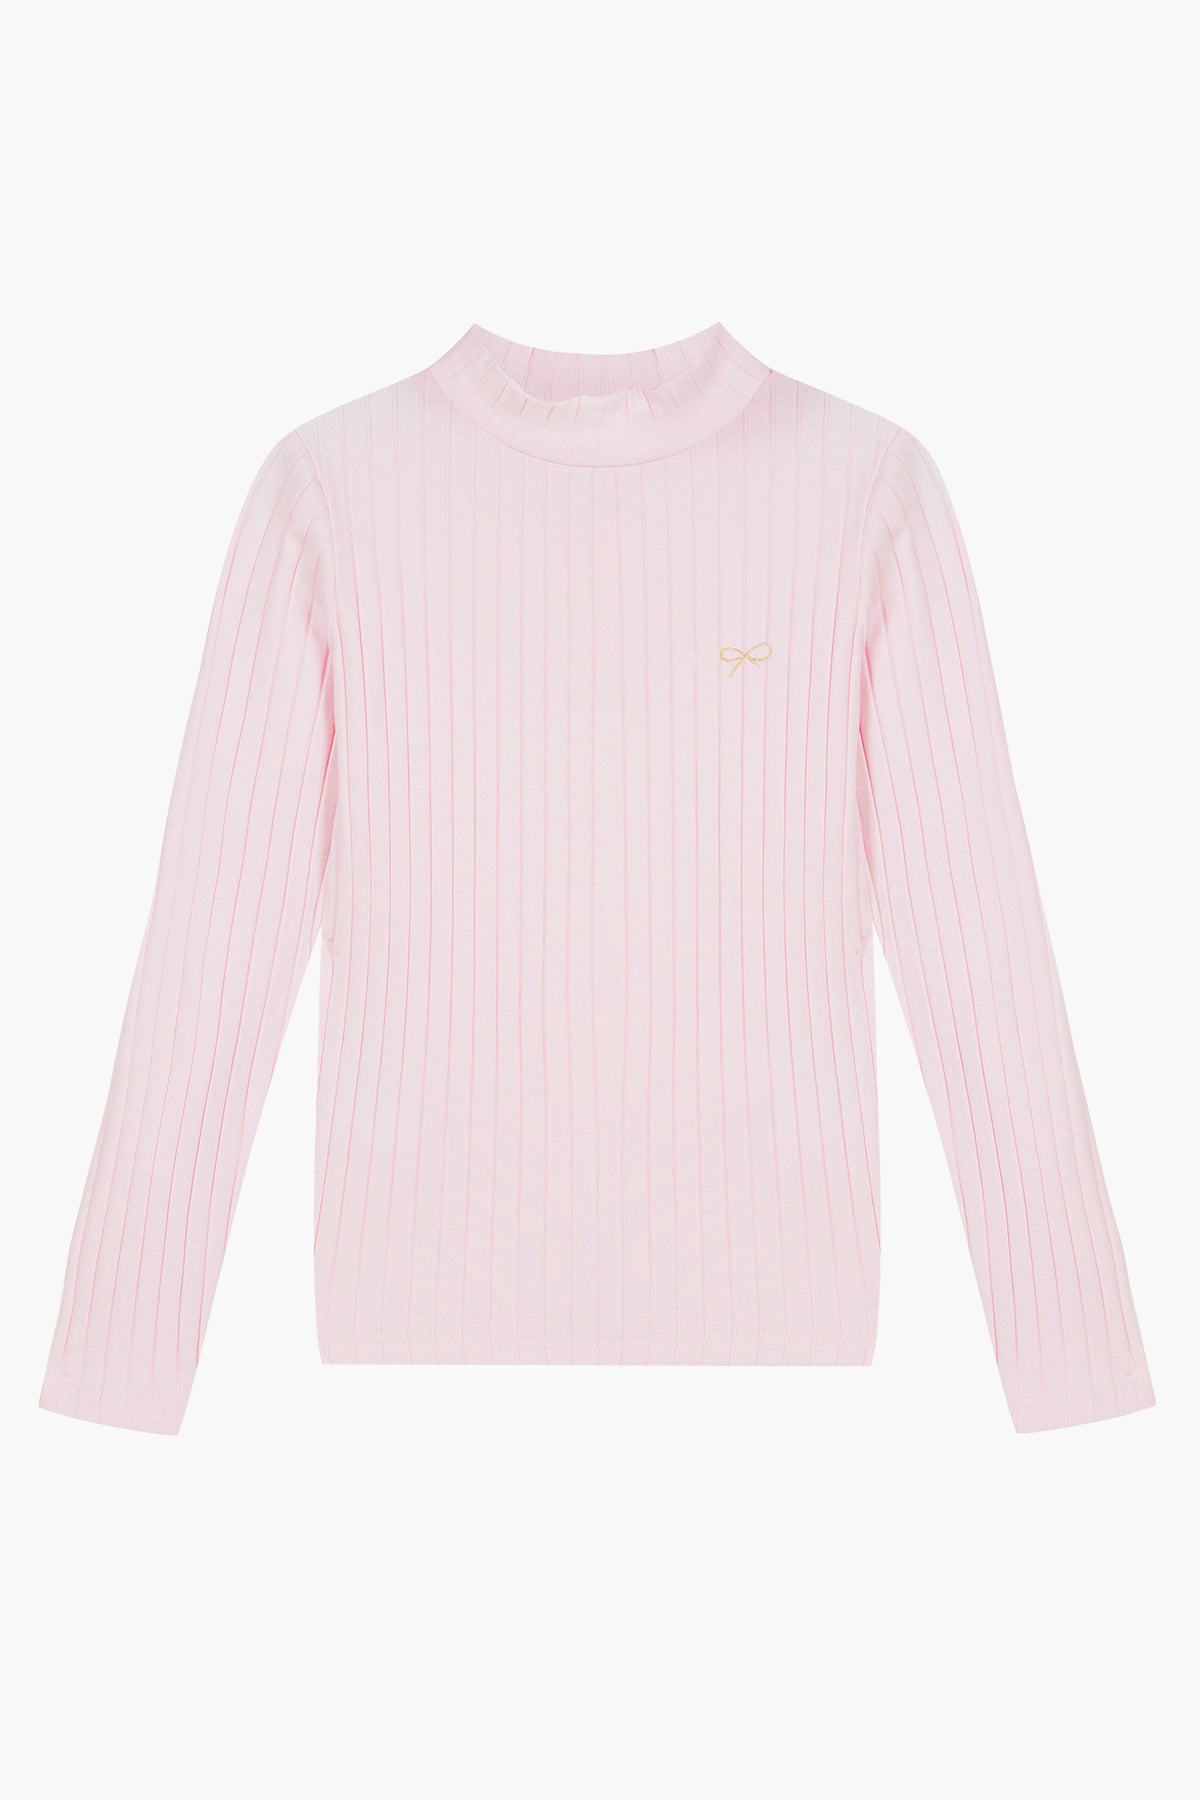 Lili Gaufrette Mock Neck Girls Shirt - Pink